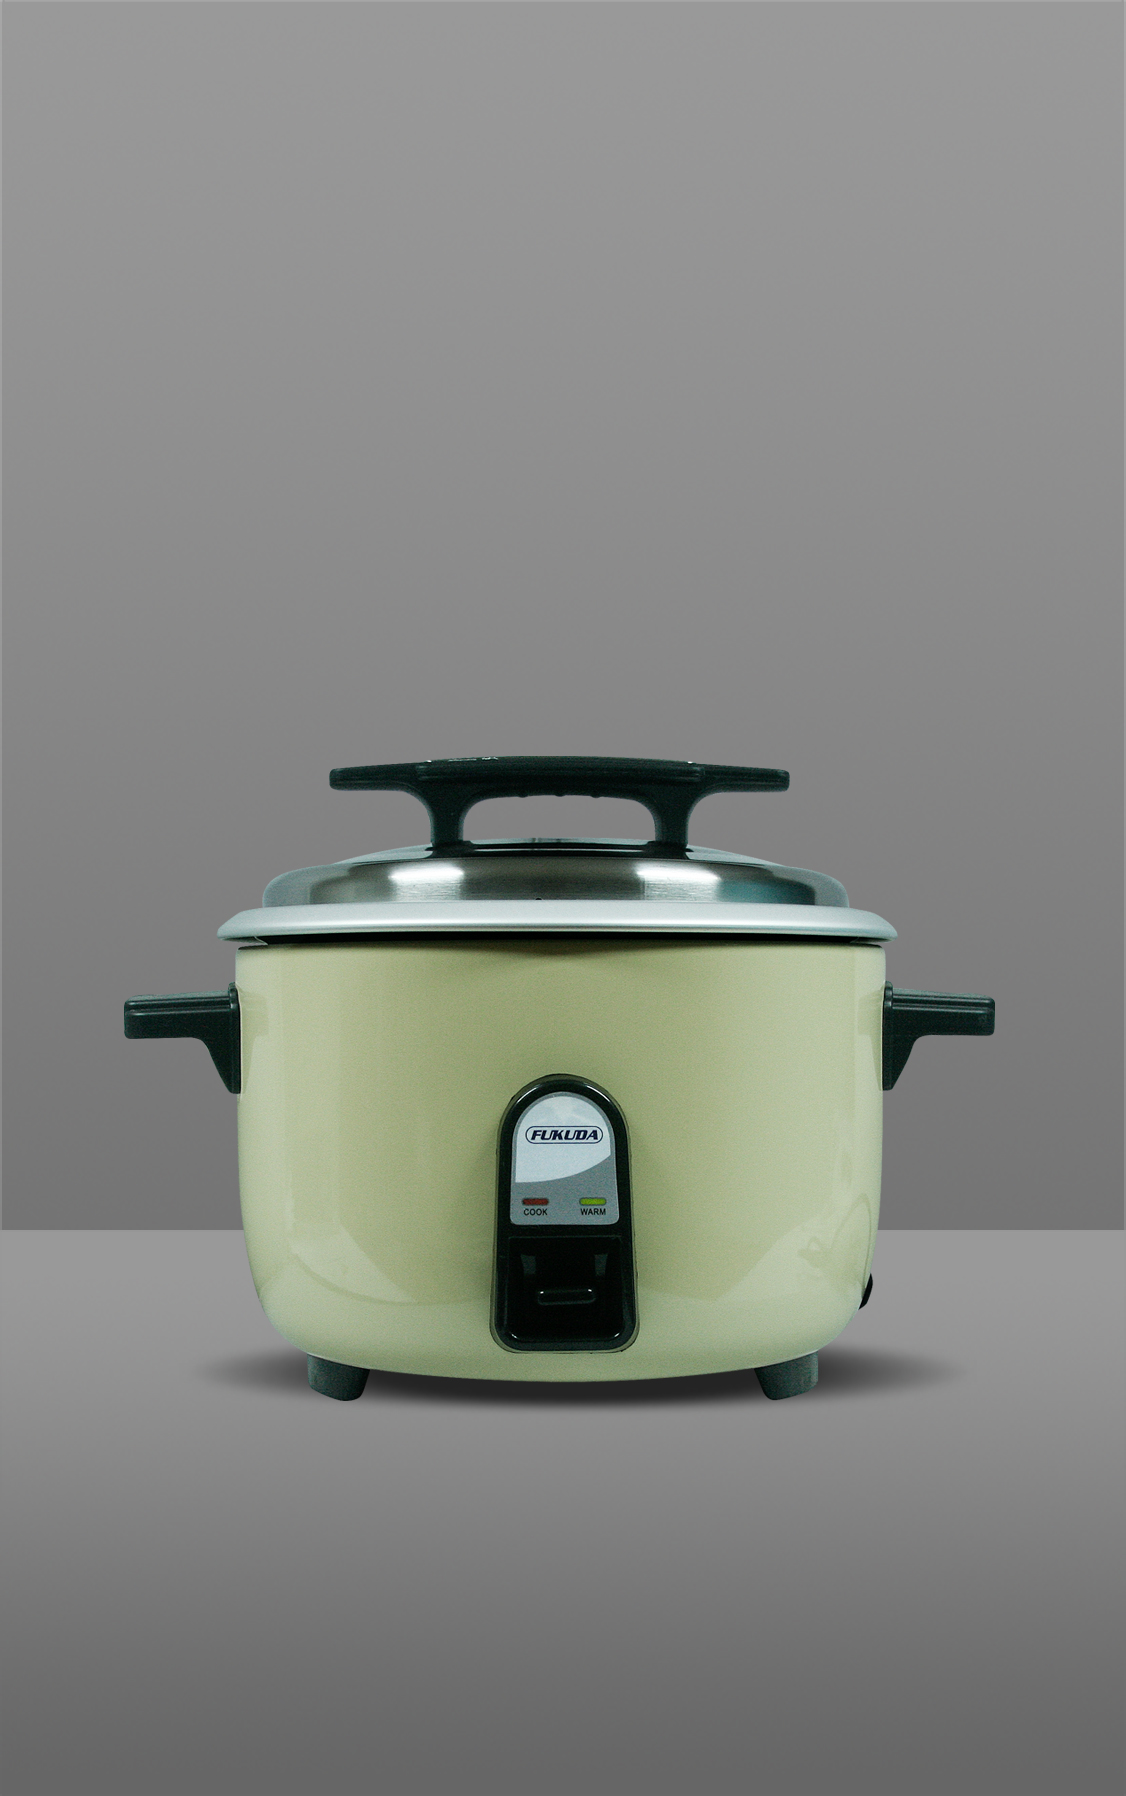 23 CUPS COMMERCIAL RICE COOKER & WARMER 4.2L